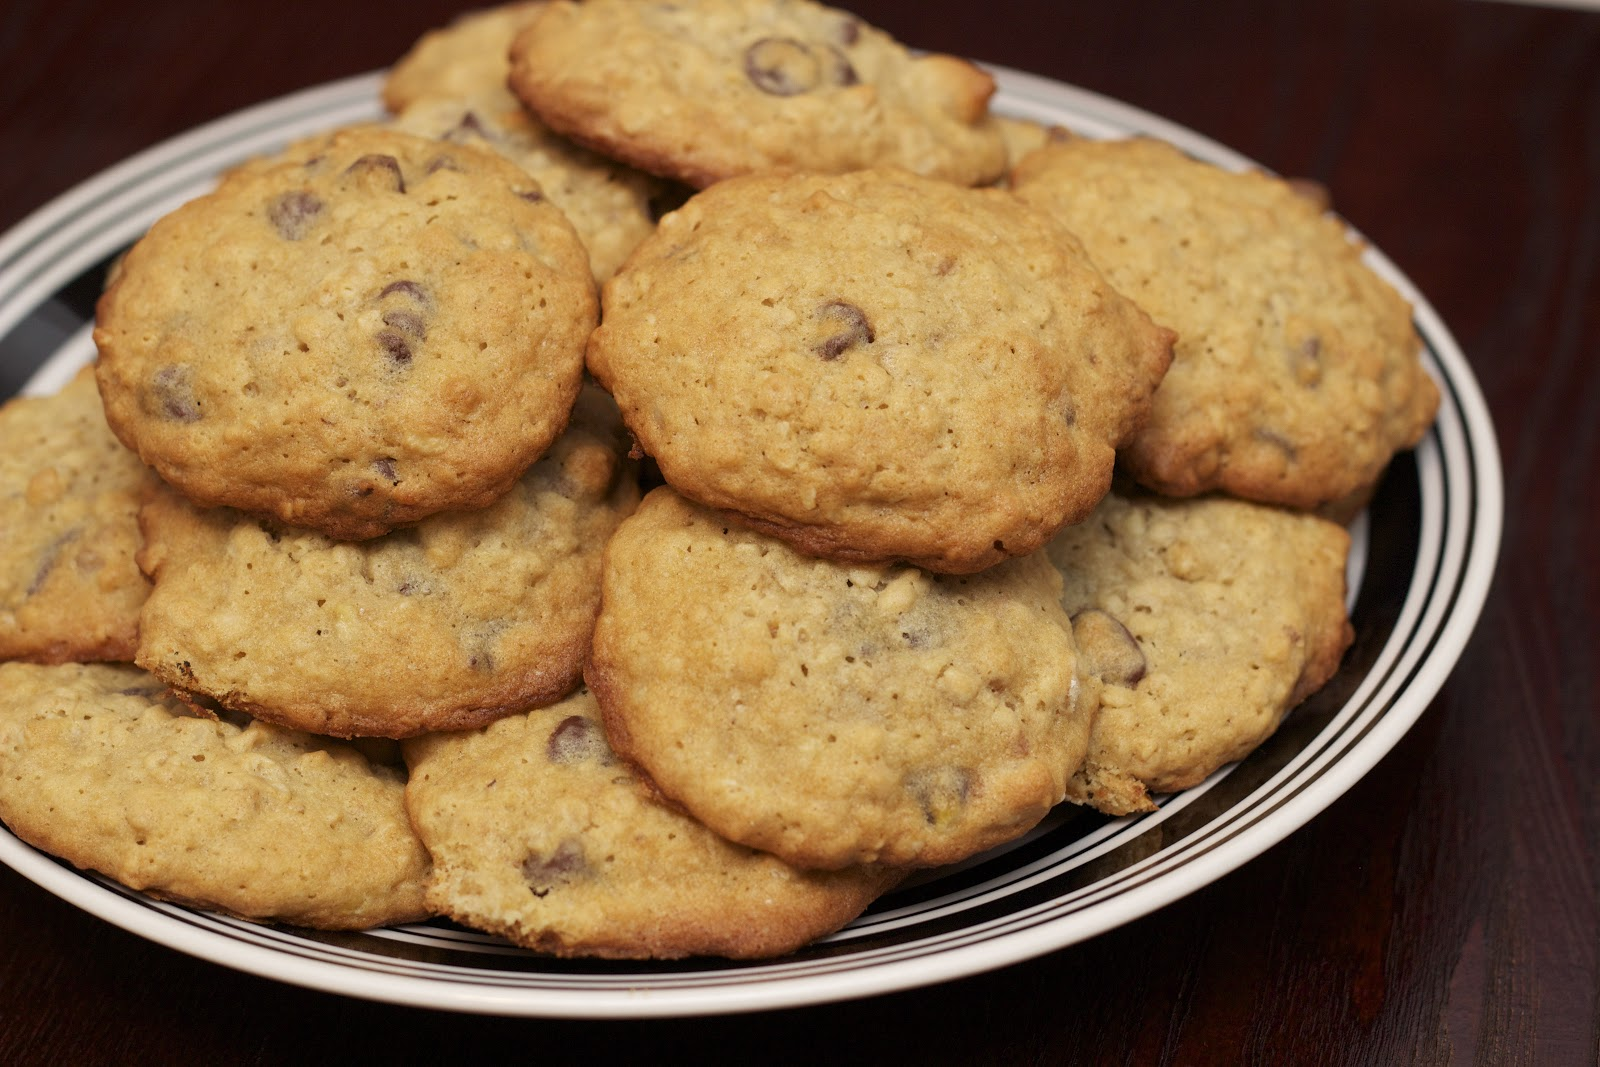 Samantha Michele Extraordinaire: Banana Walnut Chocolate Chip Cookies